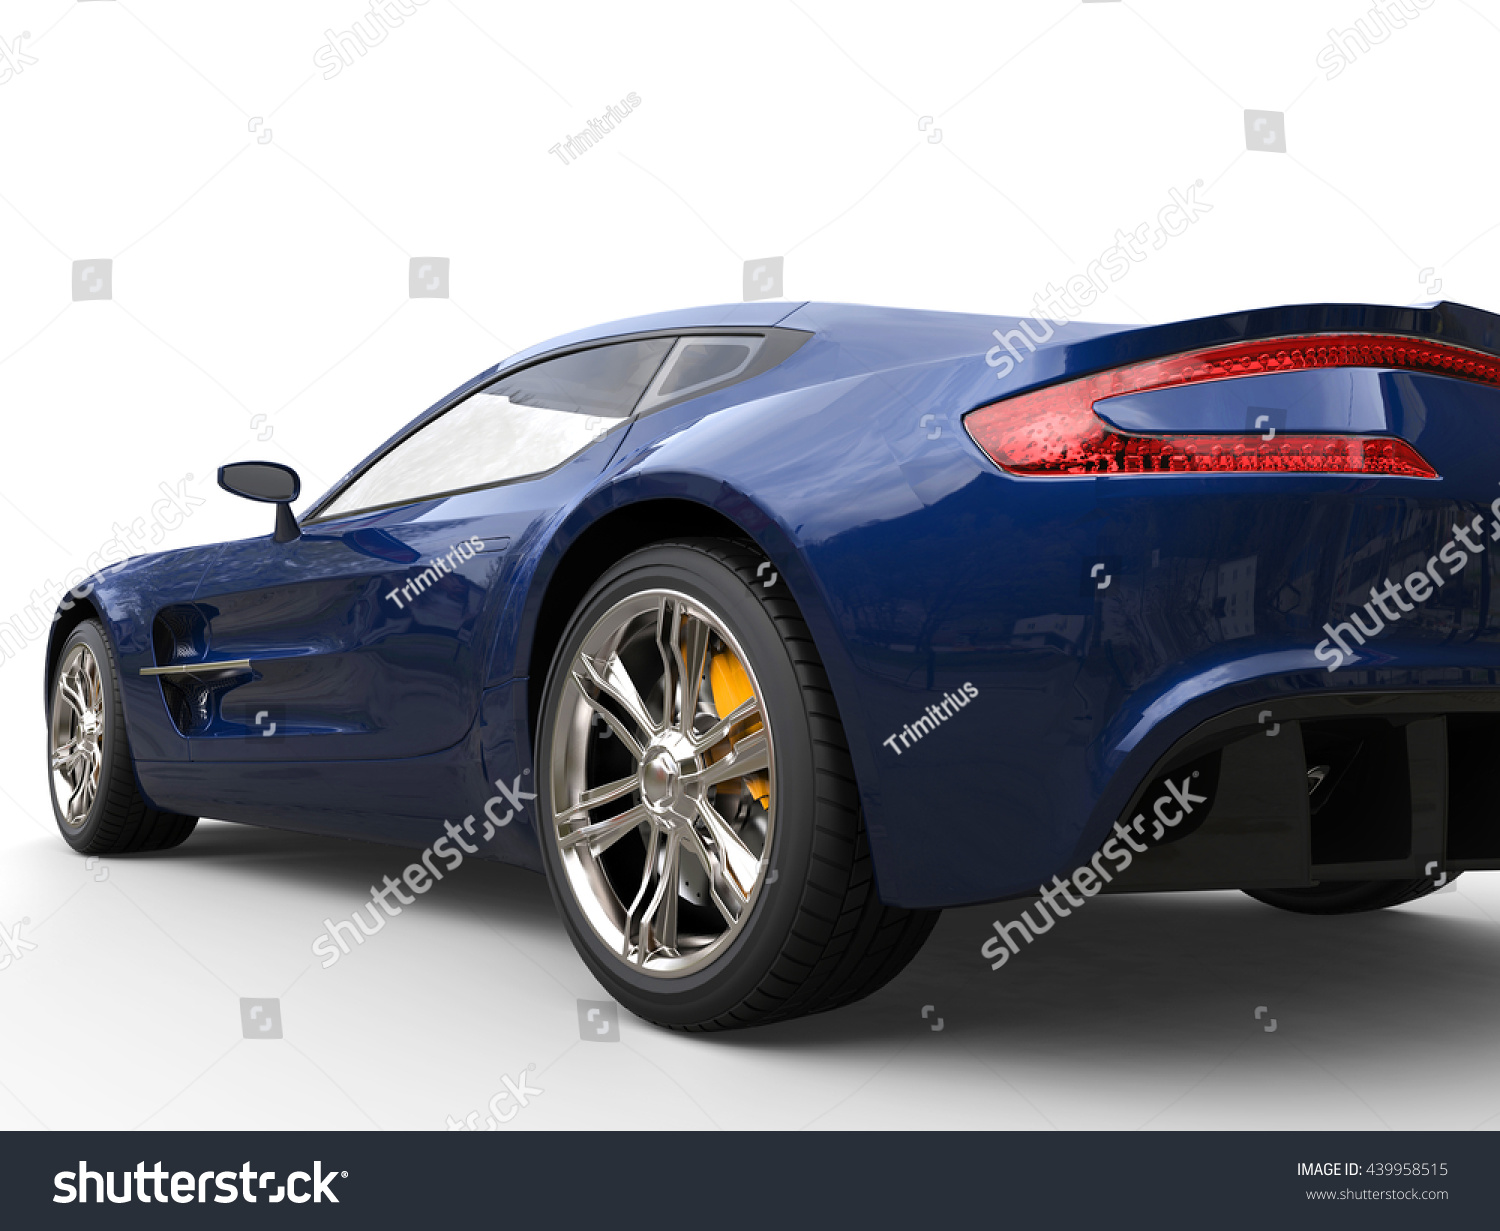 Dark Blue Sports Car   Back View   Closeup Shot   Isolated On White  Background